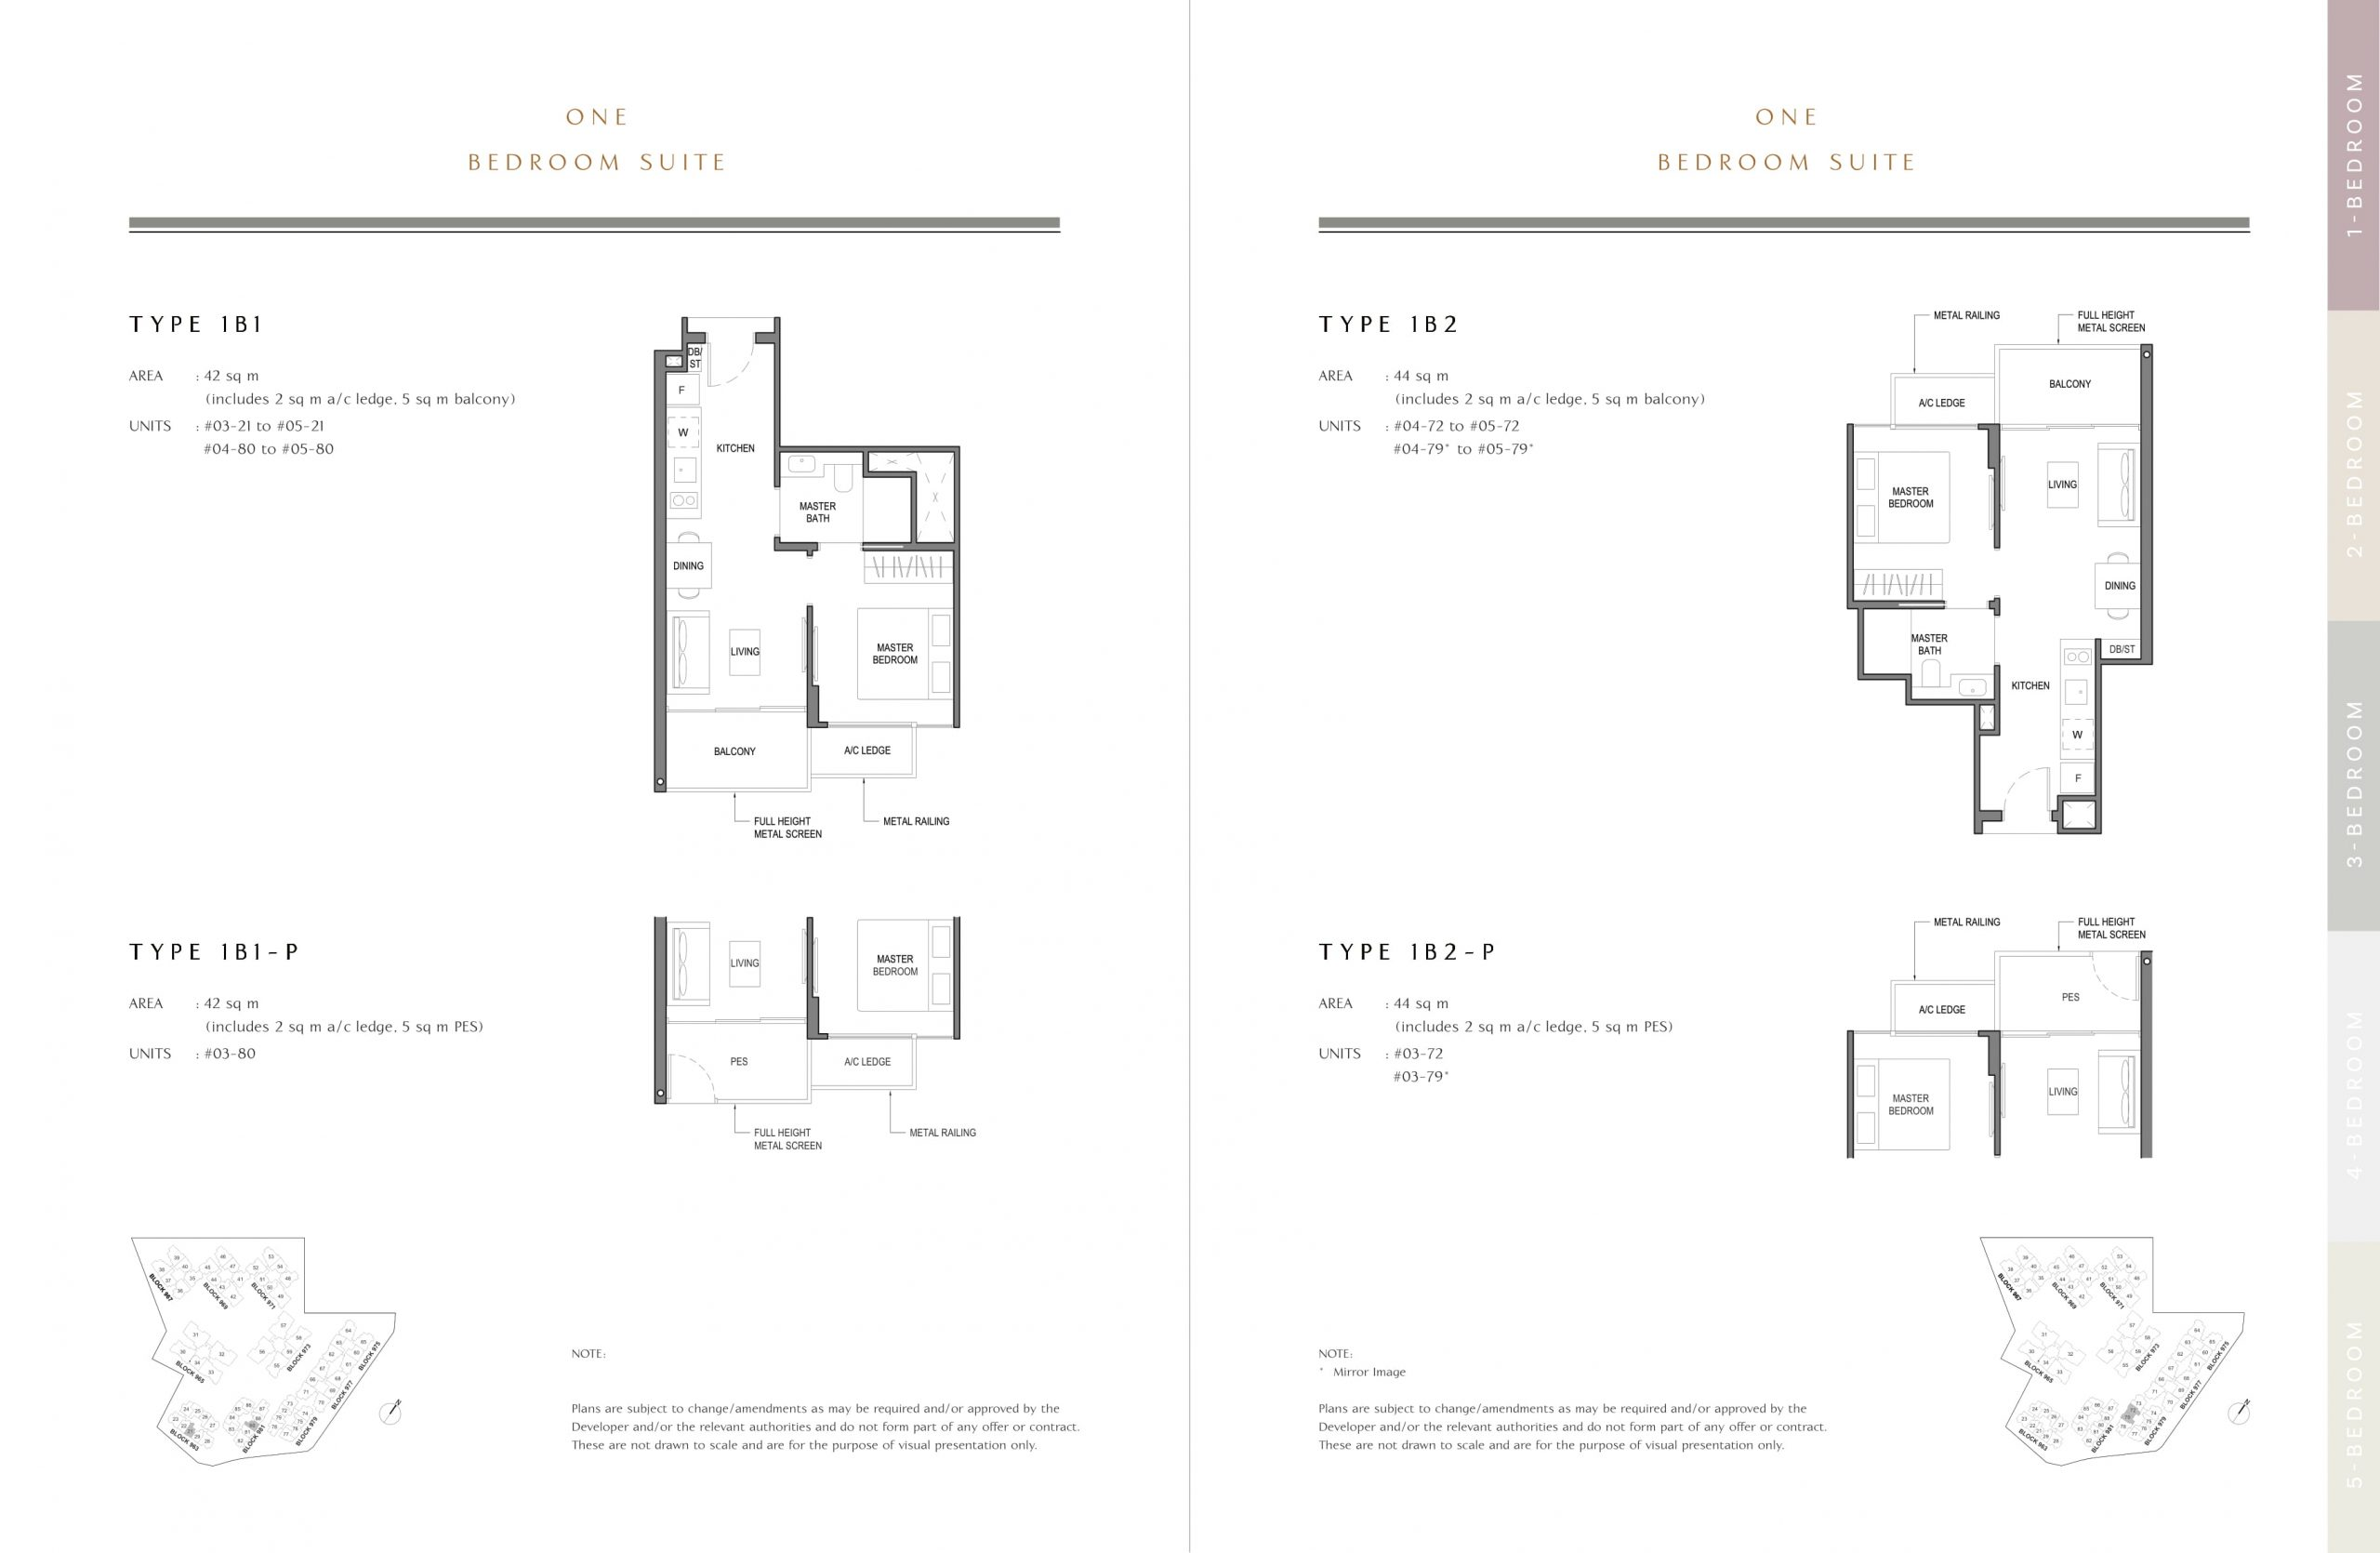 Parc Komo's one-bedroom suite types